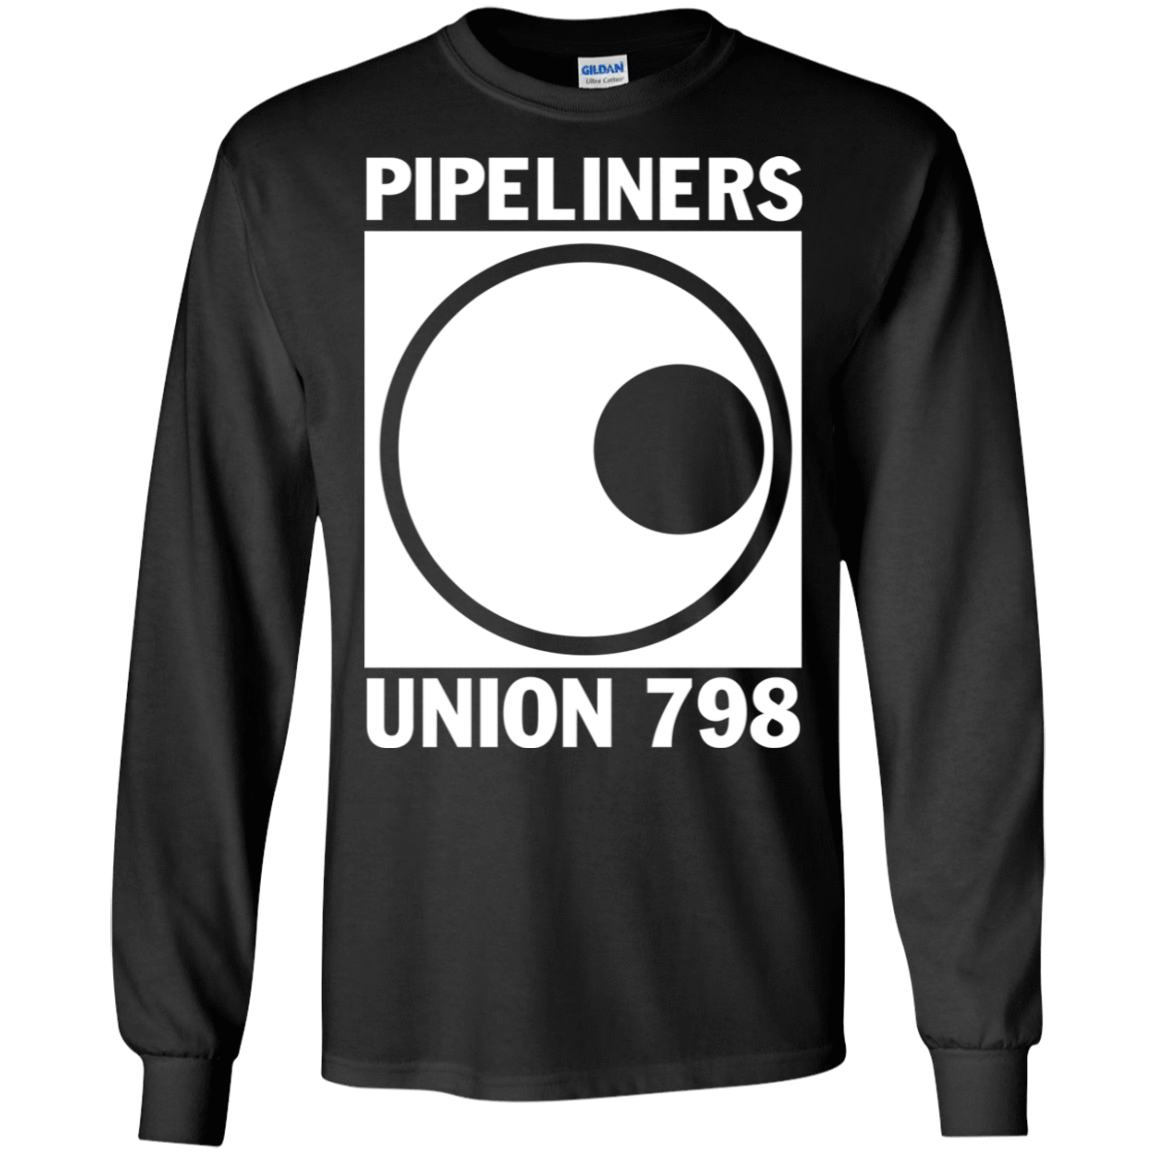 I'm A Union Member Pipeliners Union 798 30-186-73302068-333 - Tee Ript